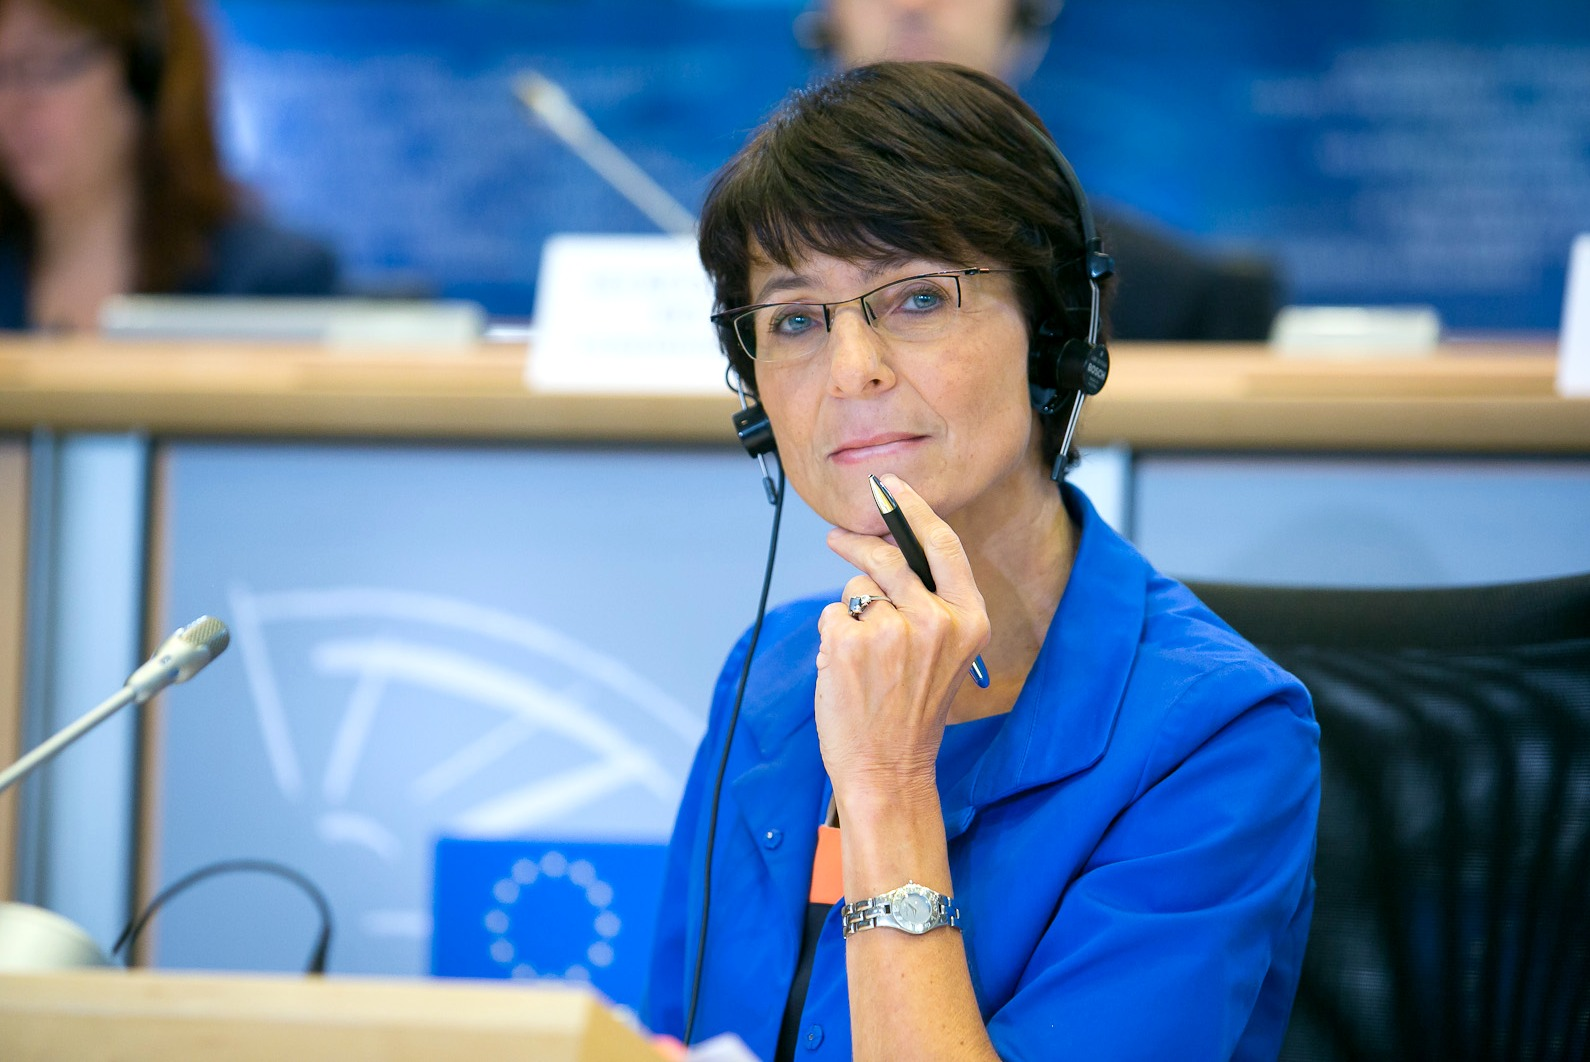 [epp group/Flickr]